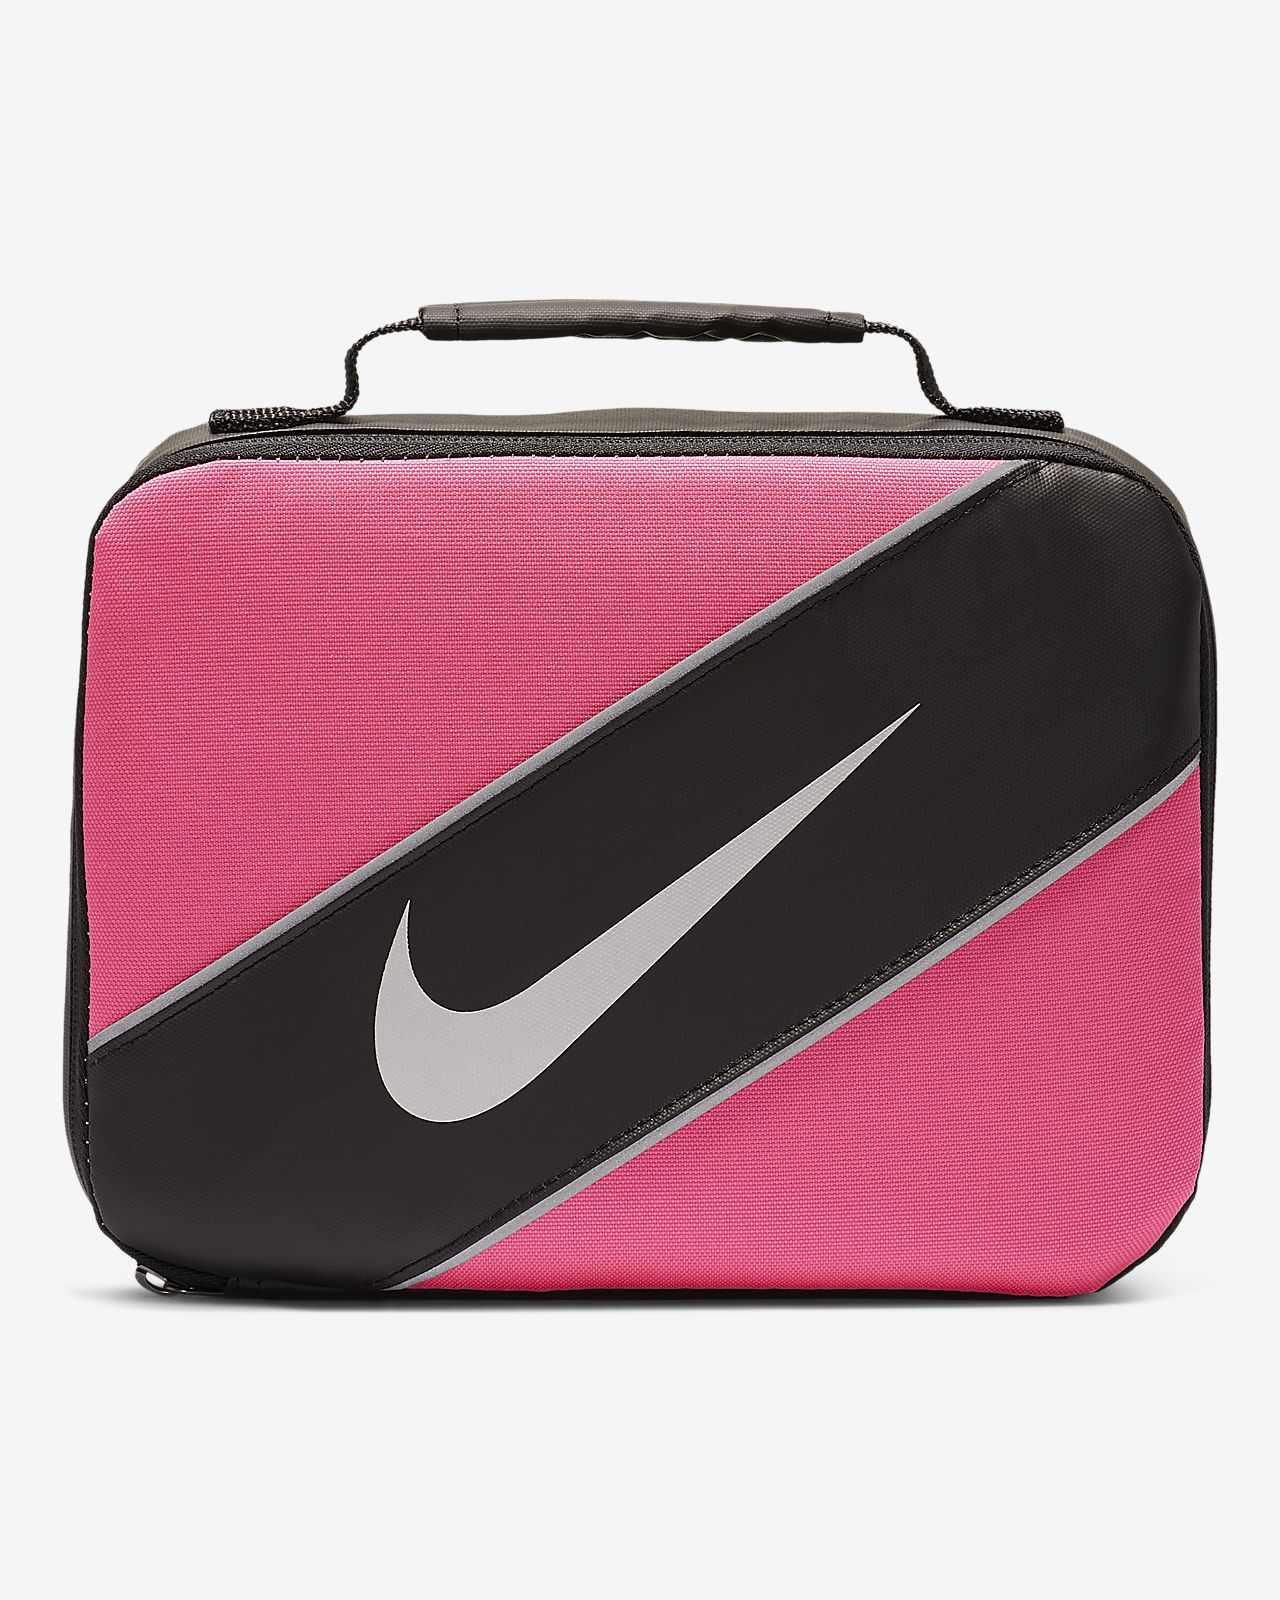 Nike Insulated Fuel Pack